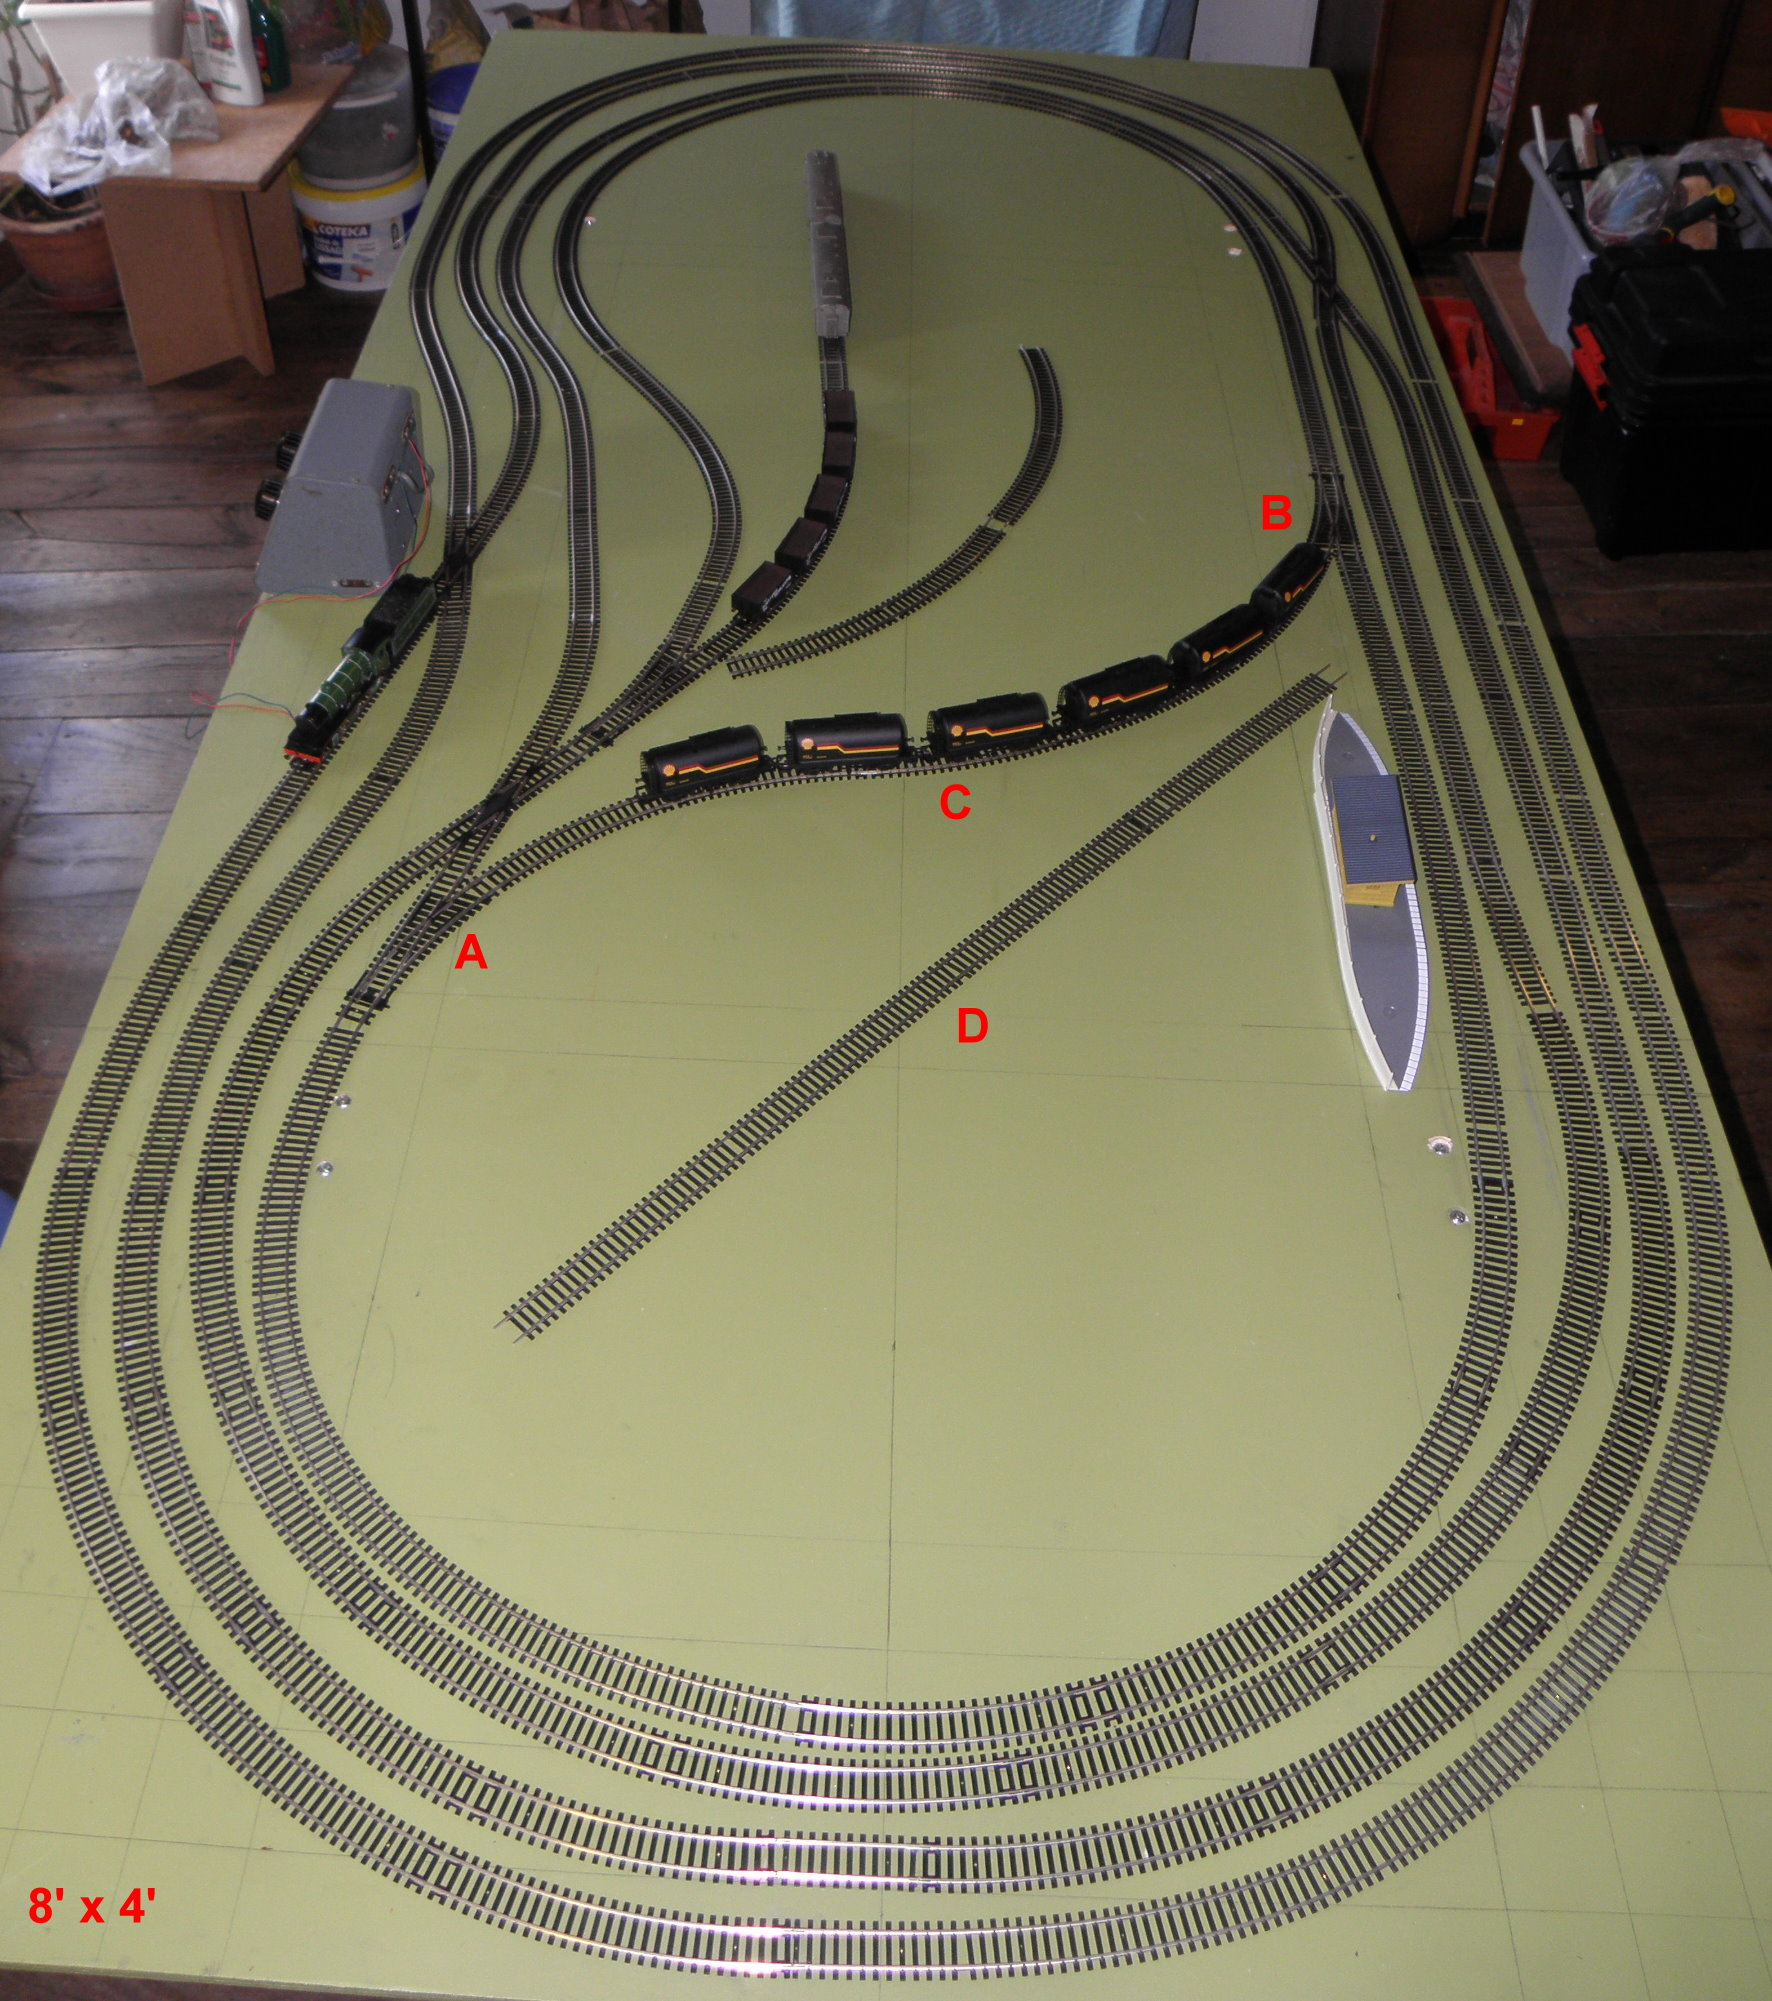 Model Train Track Wiring Simple Guide About Diagram Ho Bernard Needs Help Railroad Layouts Plansmodel Dcc Railway Switch